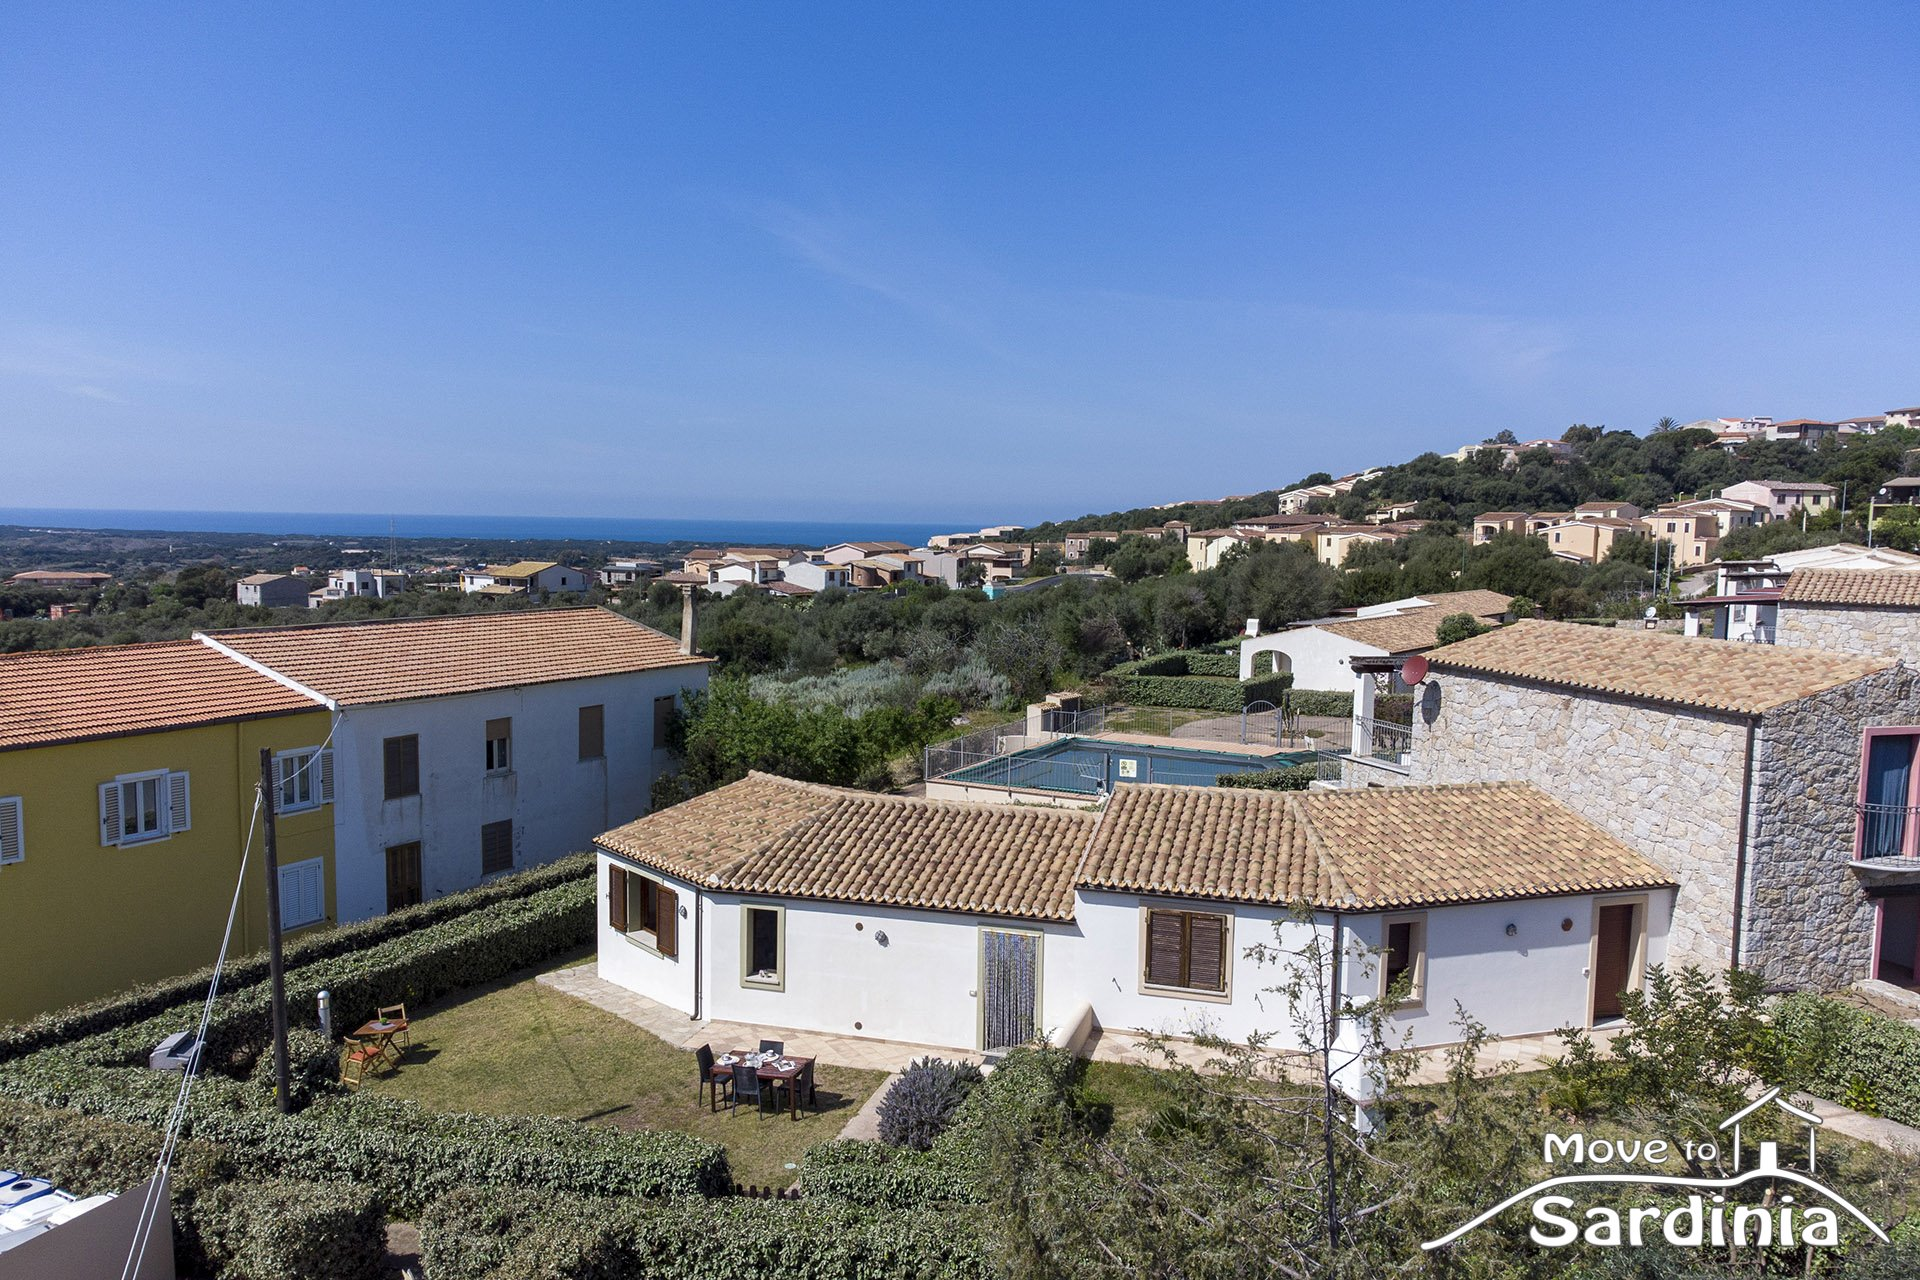 Villa for sale in Badesi, in a residential area with a large garden